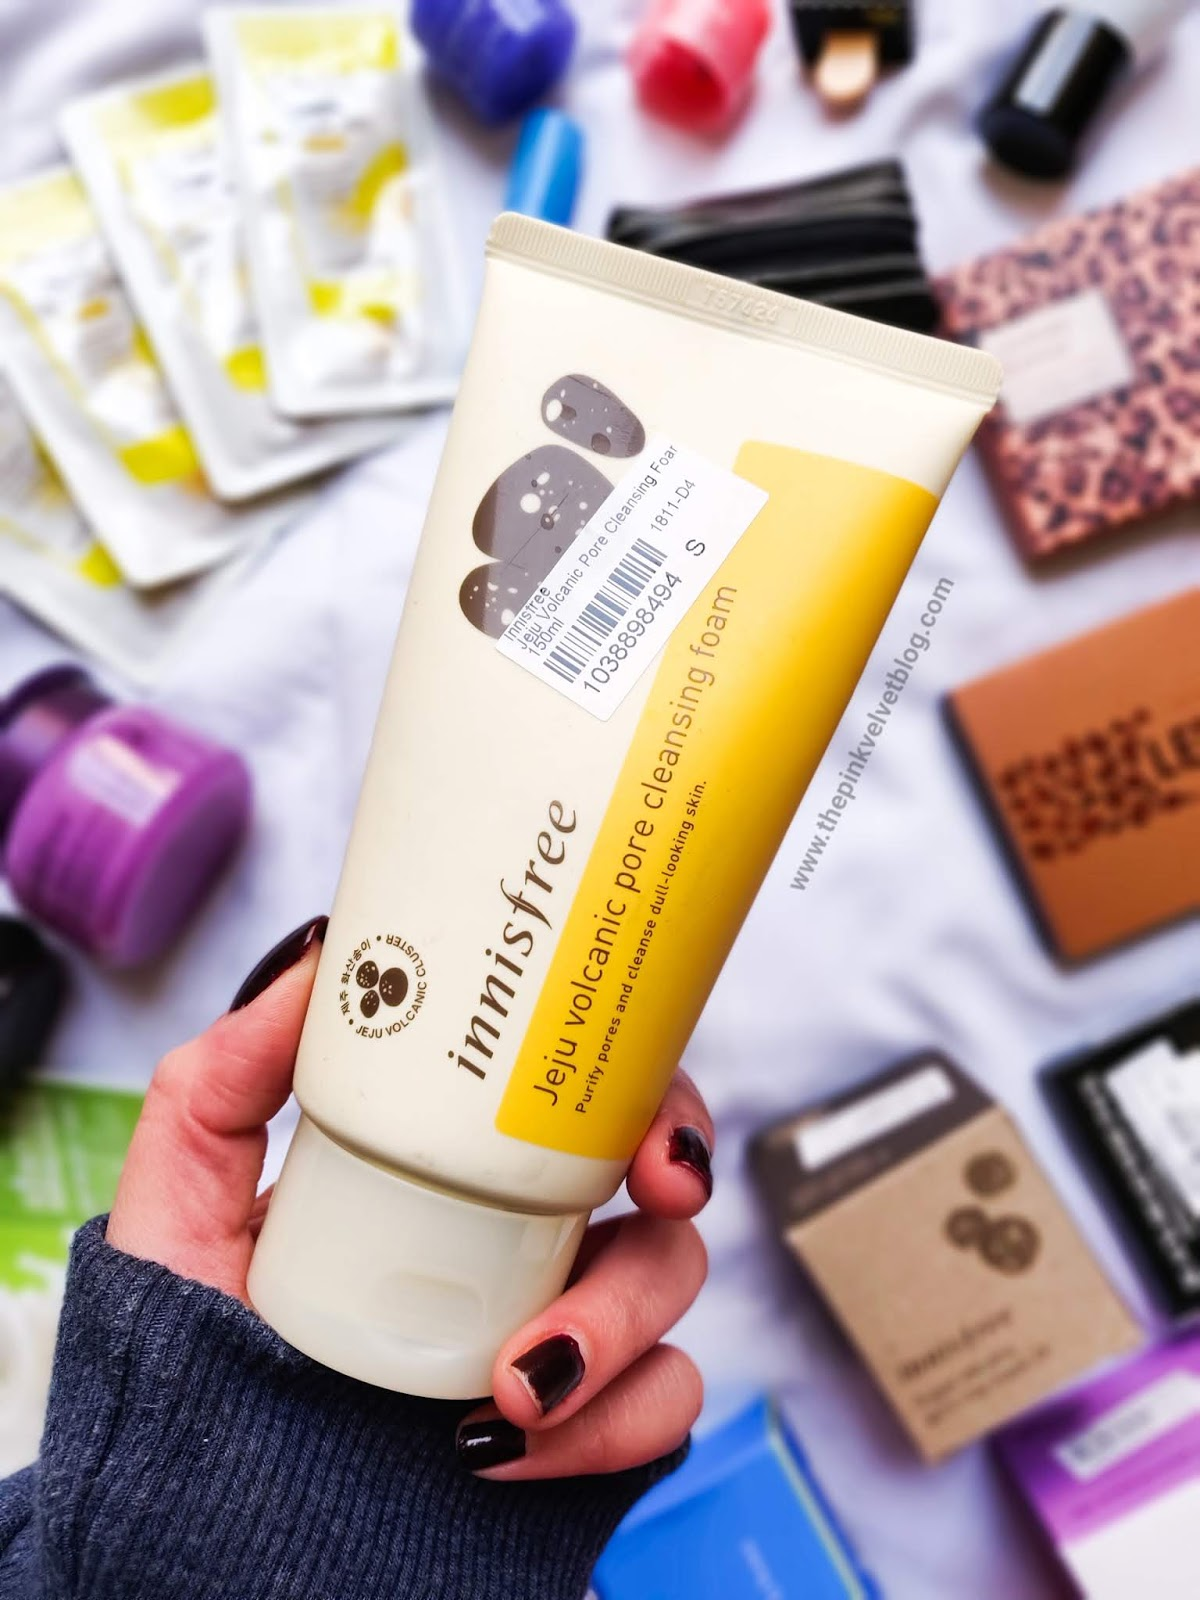 YesStyle Shopping Haul and Experience | YesStyle Shopping Haul and Experience | Korean Beauty Cosmetics from YesStyle - Innisfree Jeju Pore Cleansing Foam